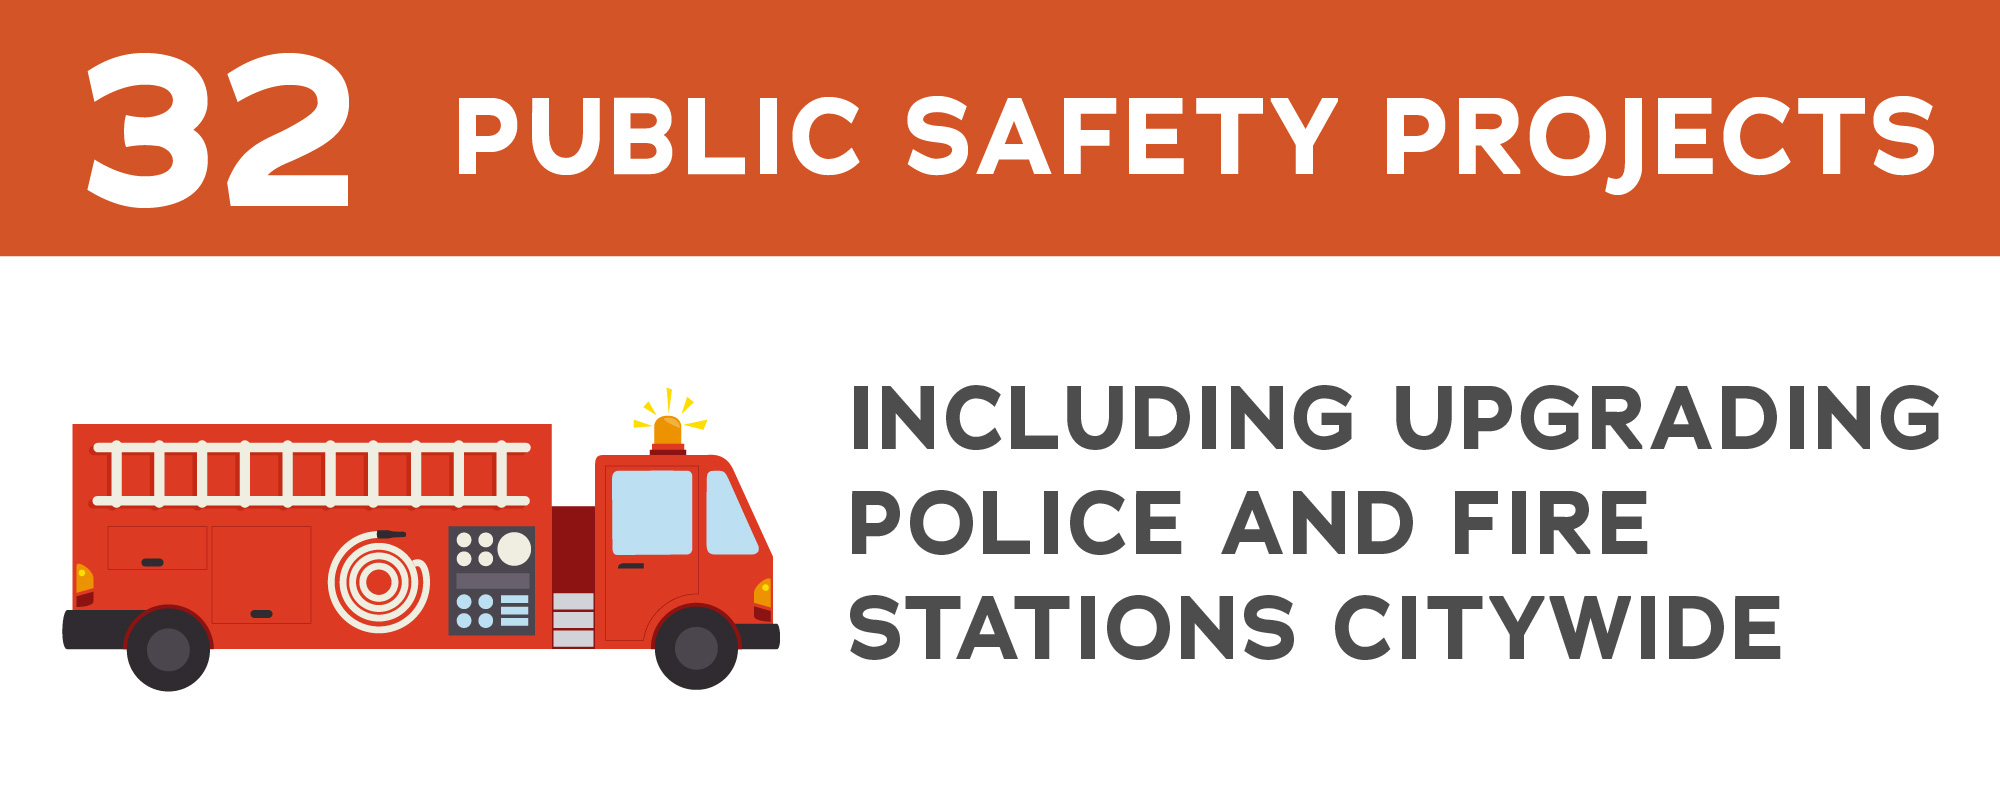 fire engine graphic with information about public safety projects